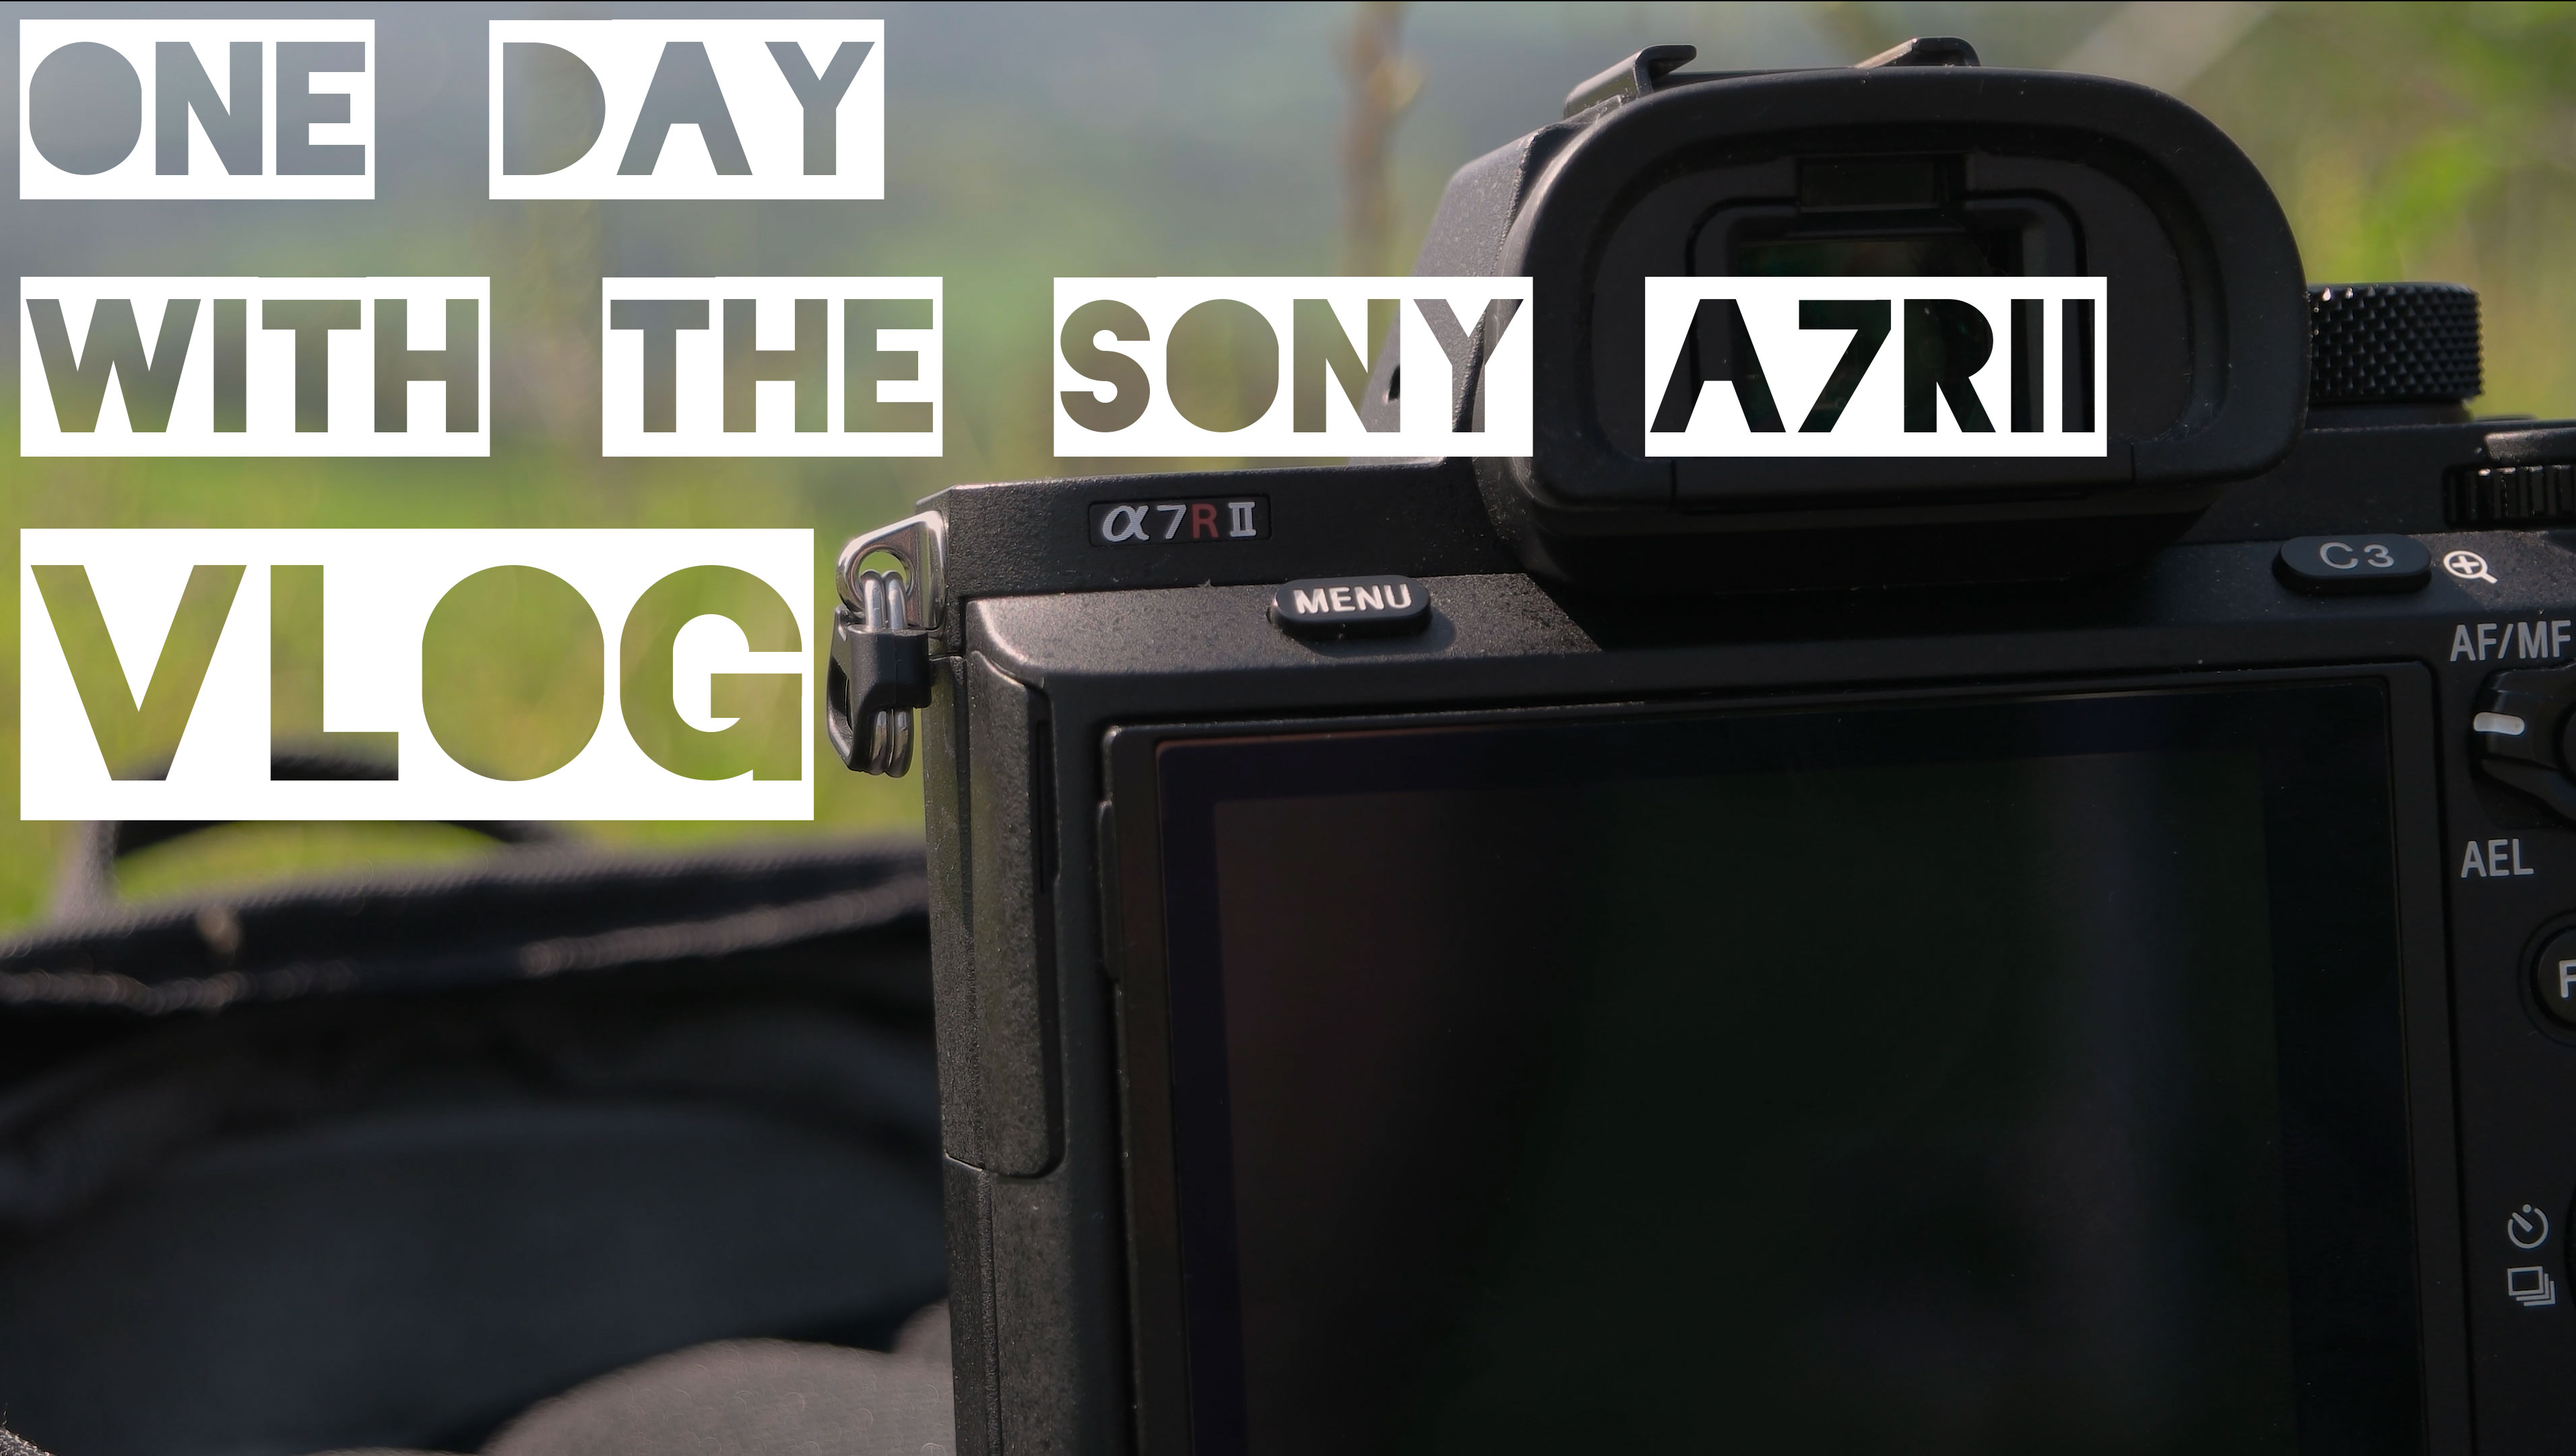 One Day with the Sony A7RII